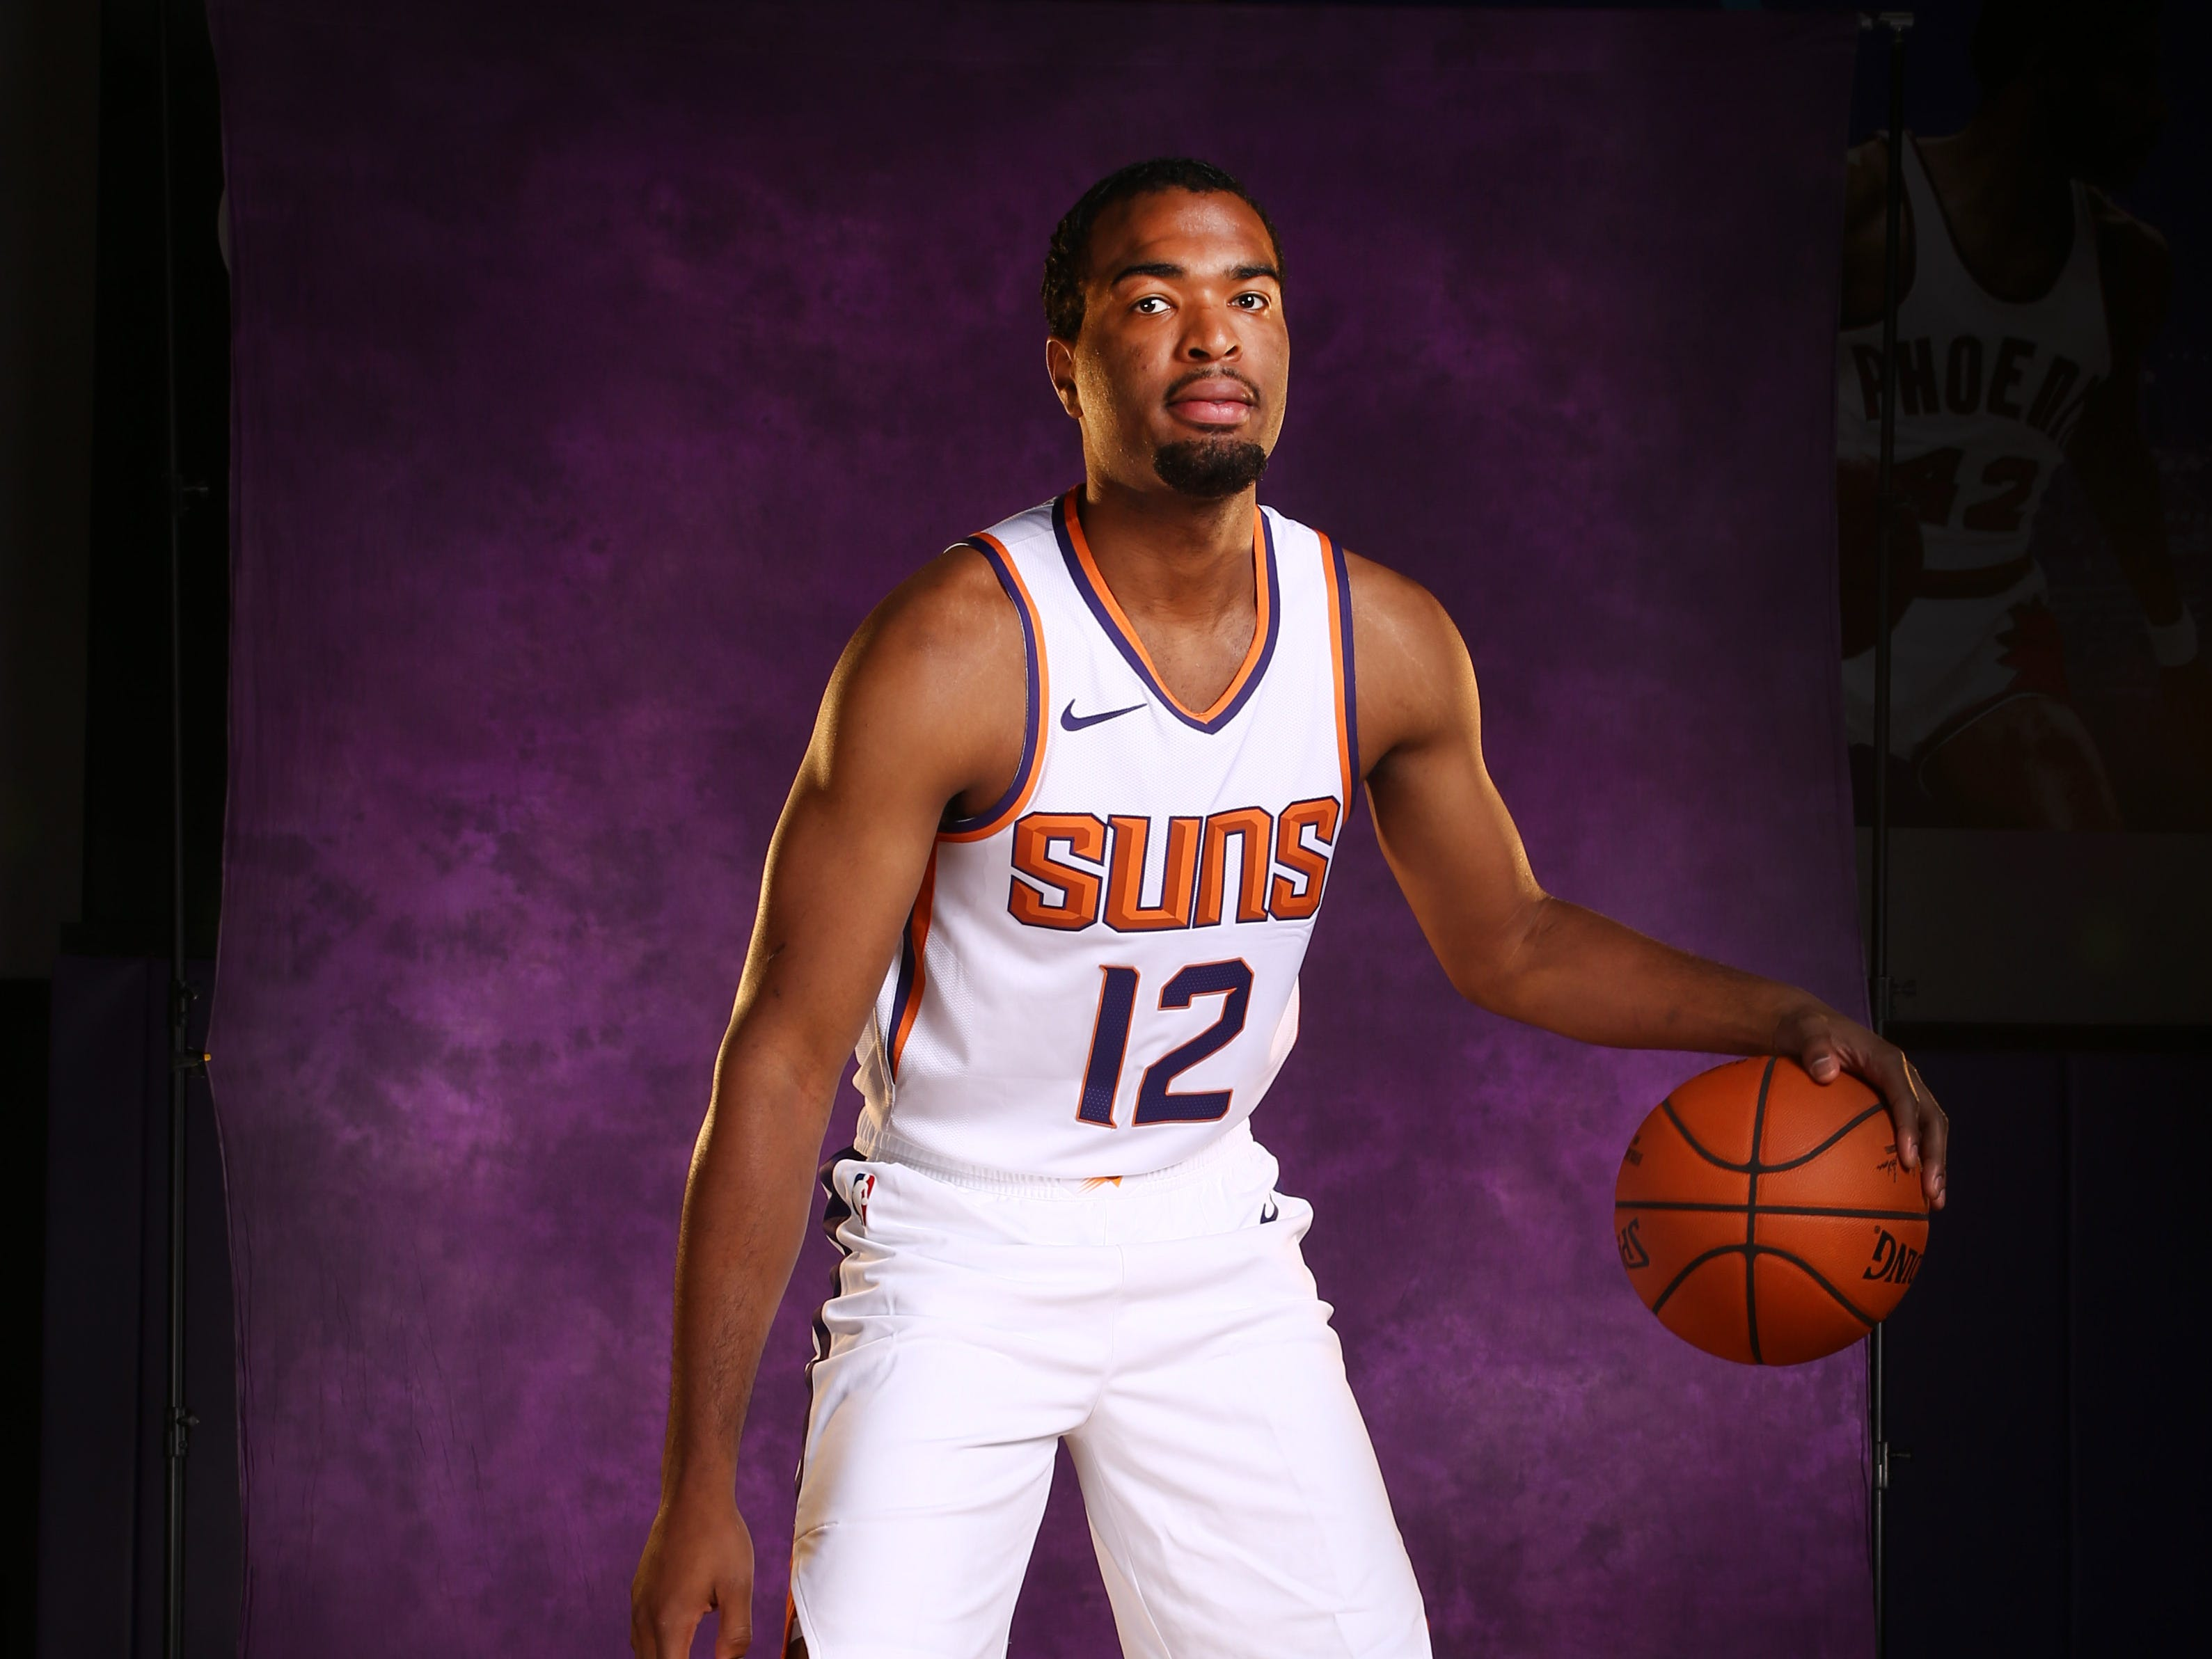 Phoenix Suns forward TJ Warren during media day at Talking Stick Resort Arena on Sep. 24, 2018, in Phoenix, Ariz.